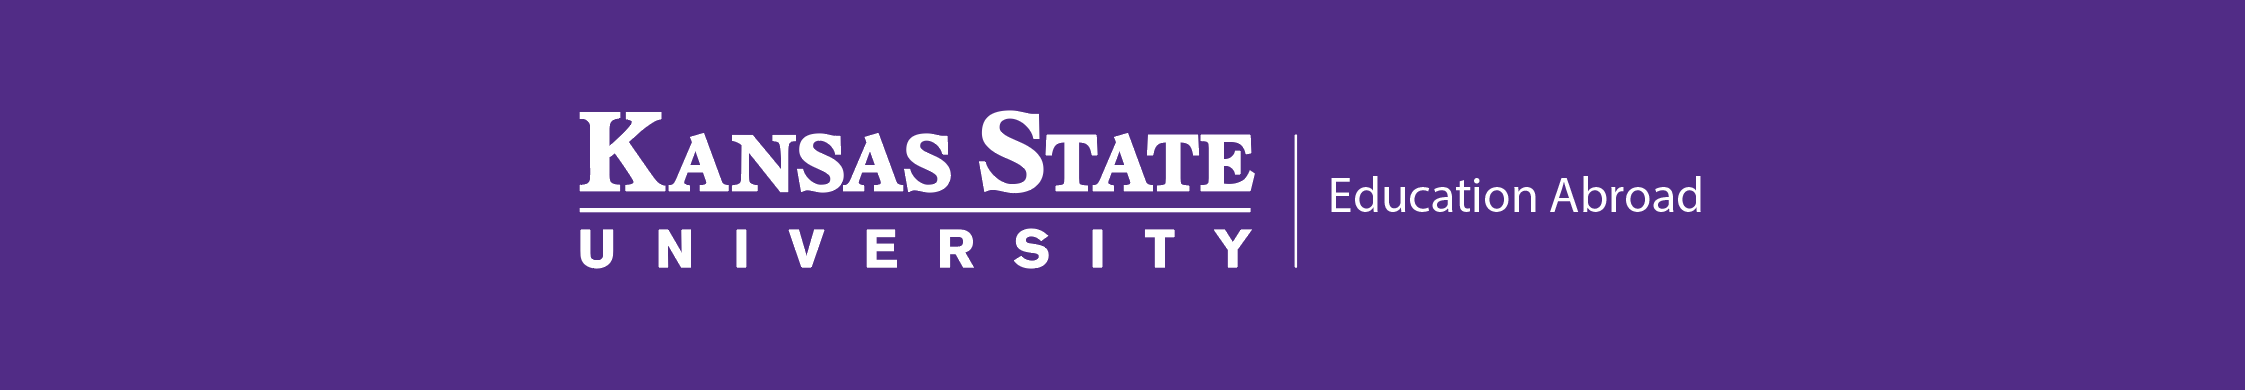 Education Abroad - Kansas State University